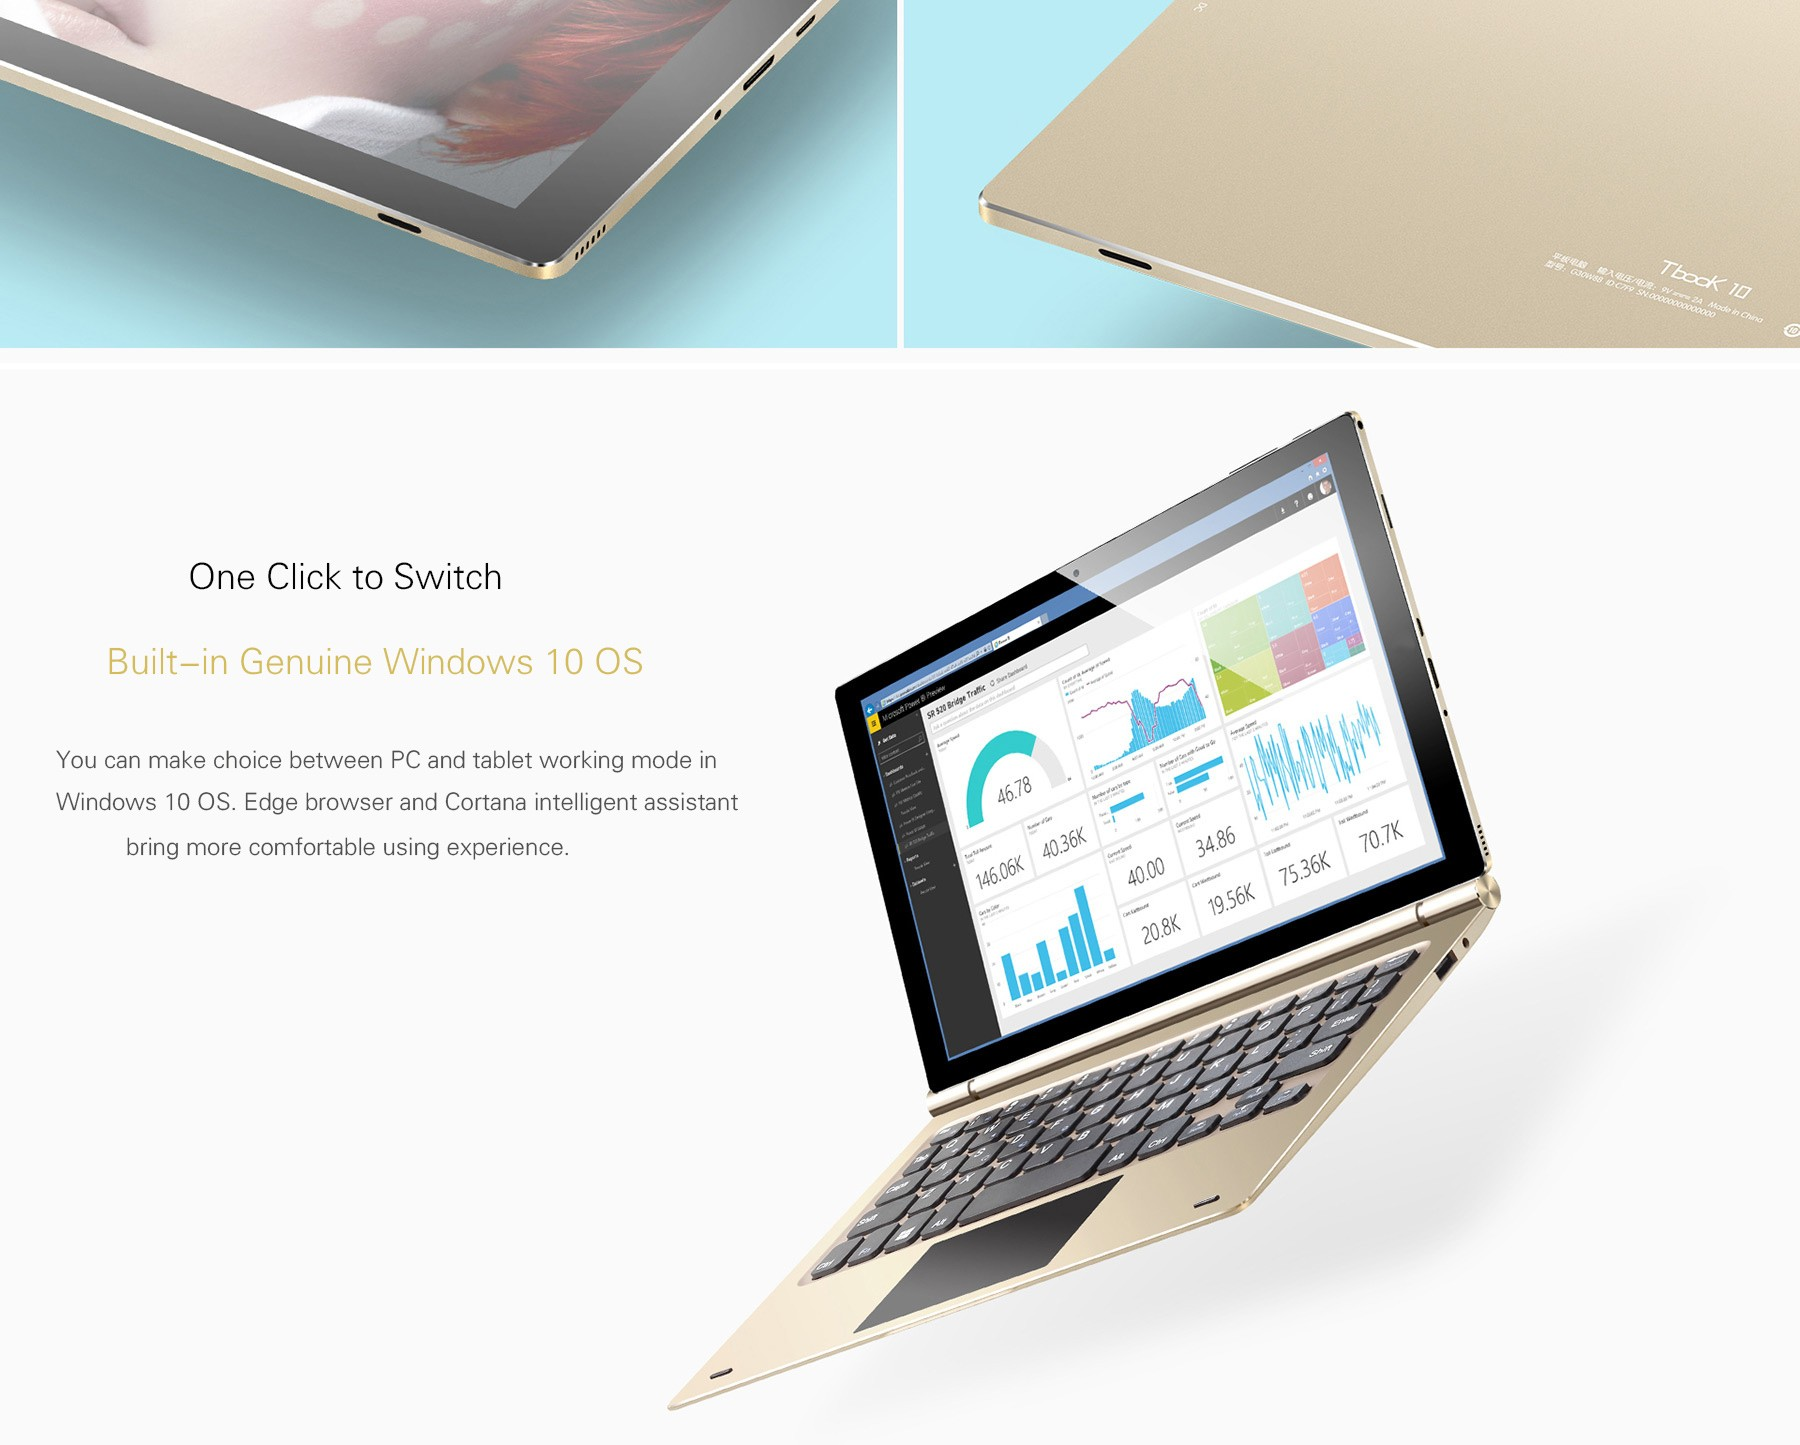 Teclast Tbook 10 2 in 1 Tablet PC 10.1 inch Windows 10 + Android 5.1 IPS Screen Intel Cherry Trail Z8300 64bit Quad Core 1.44GHz 4GB RAM 64GB ROM Bluetooth 4.0